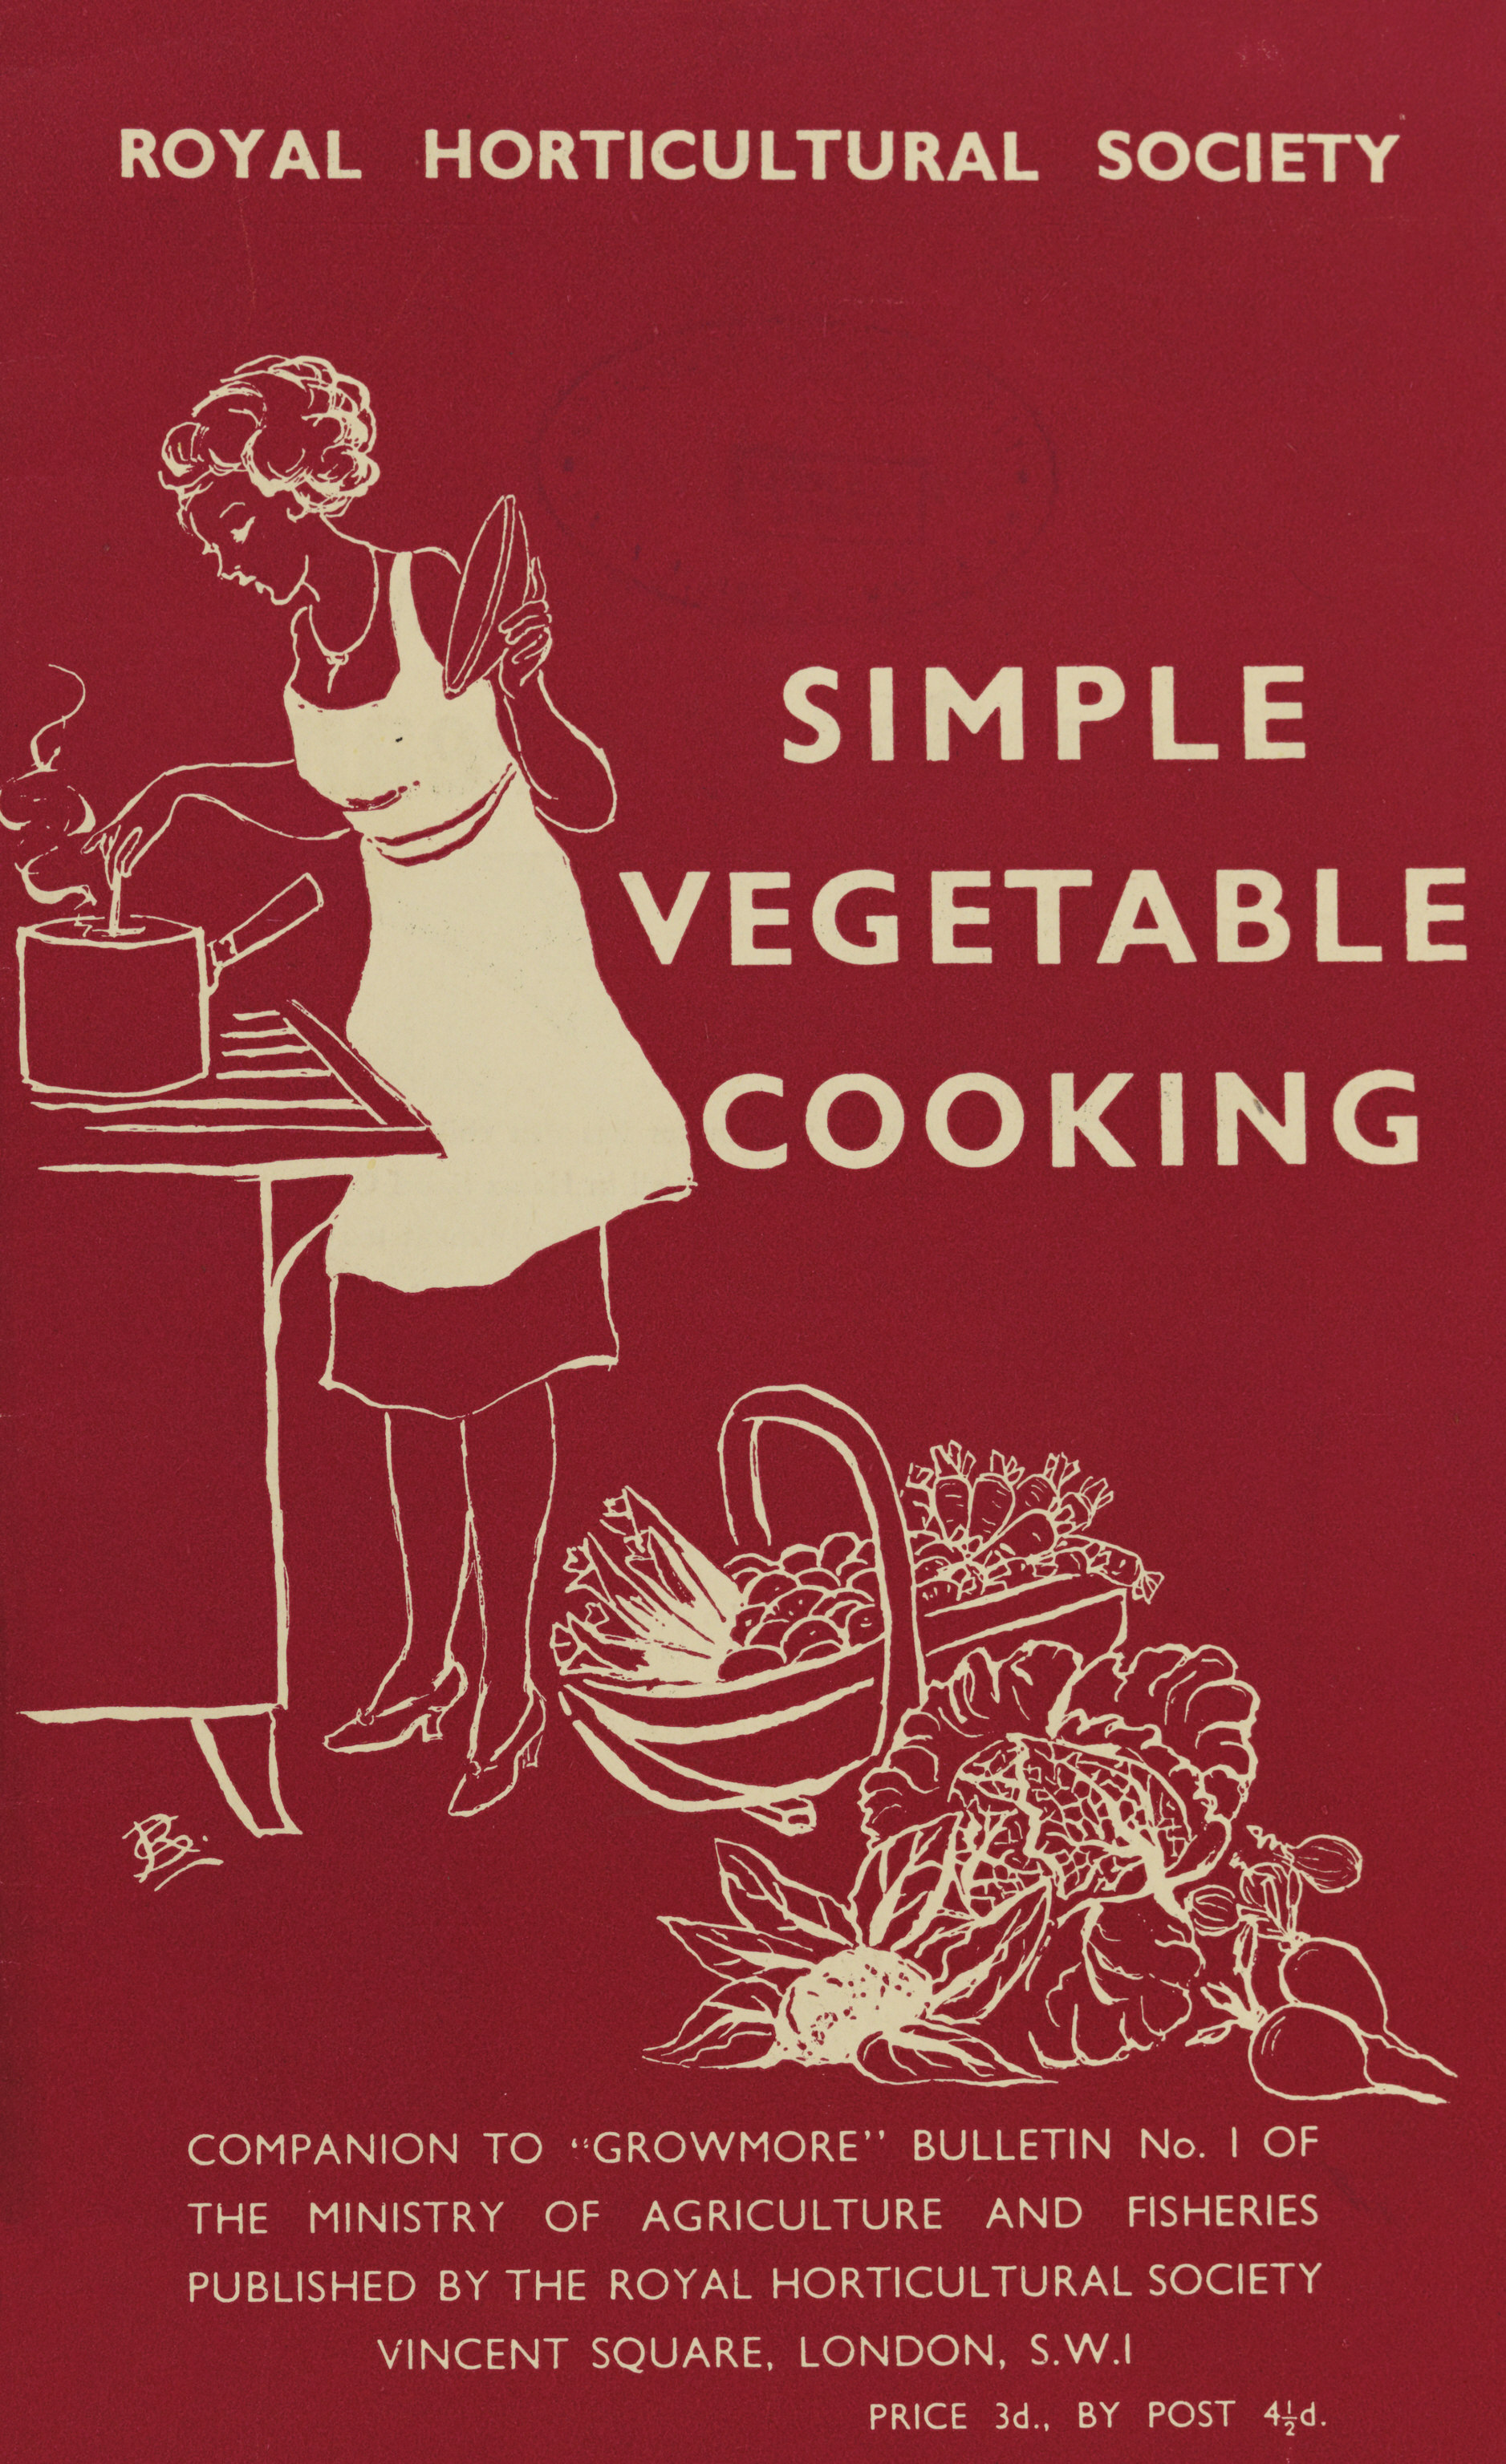 Simple Vegetable Cooking guide in wartime from RHS Lindley Collections